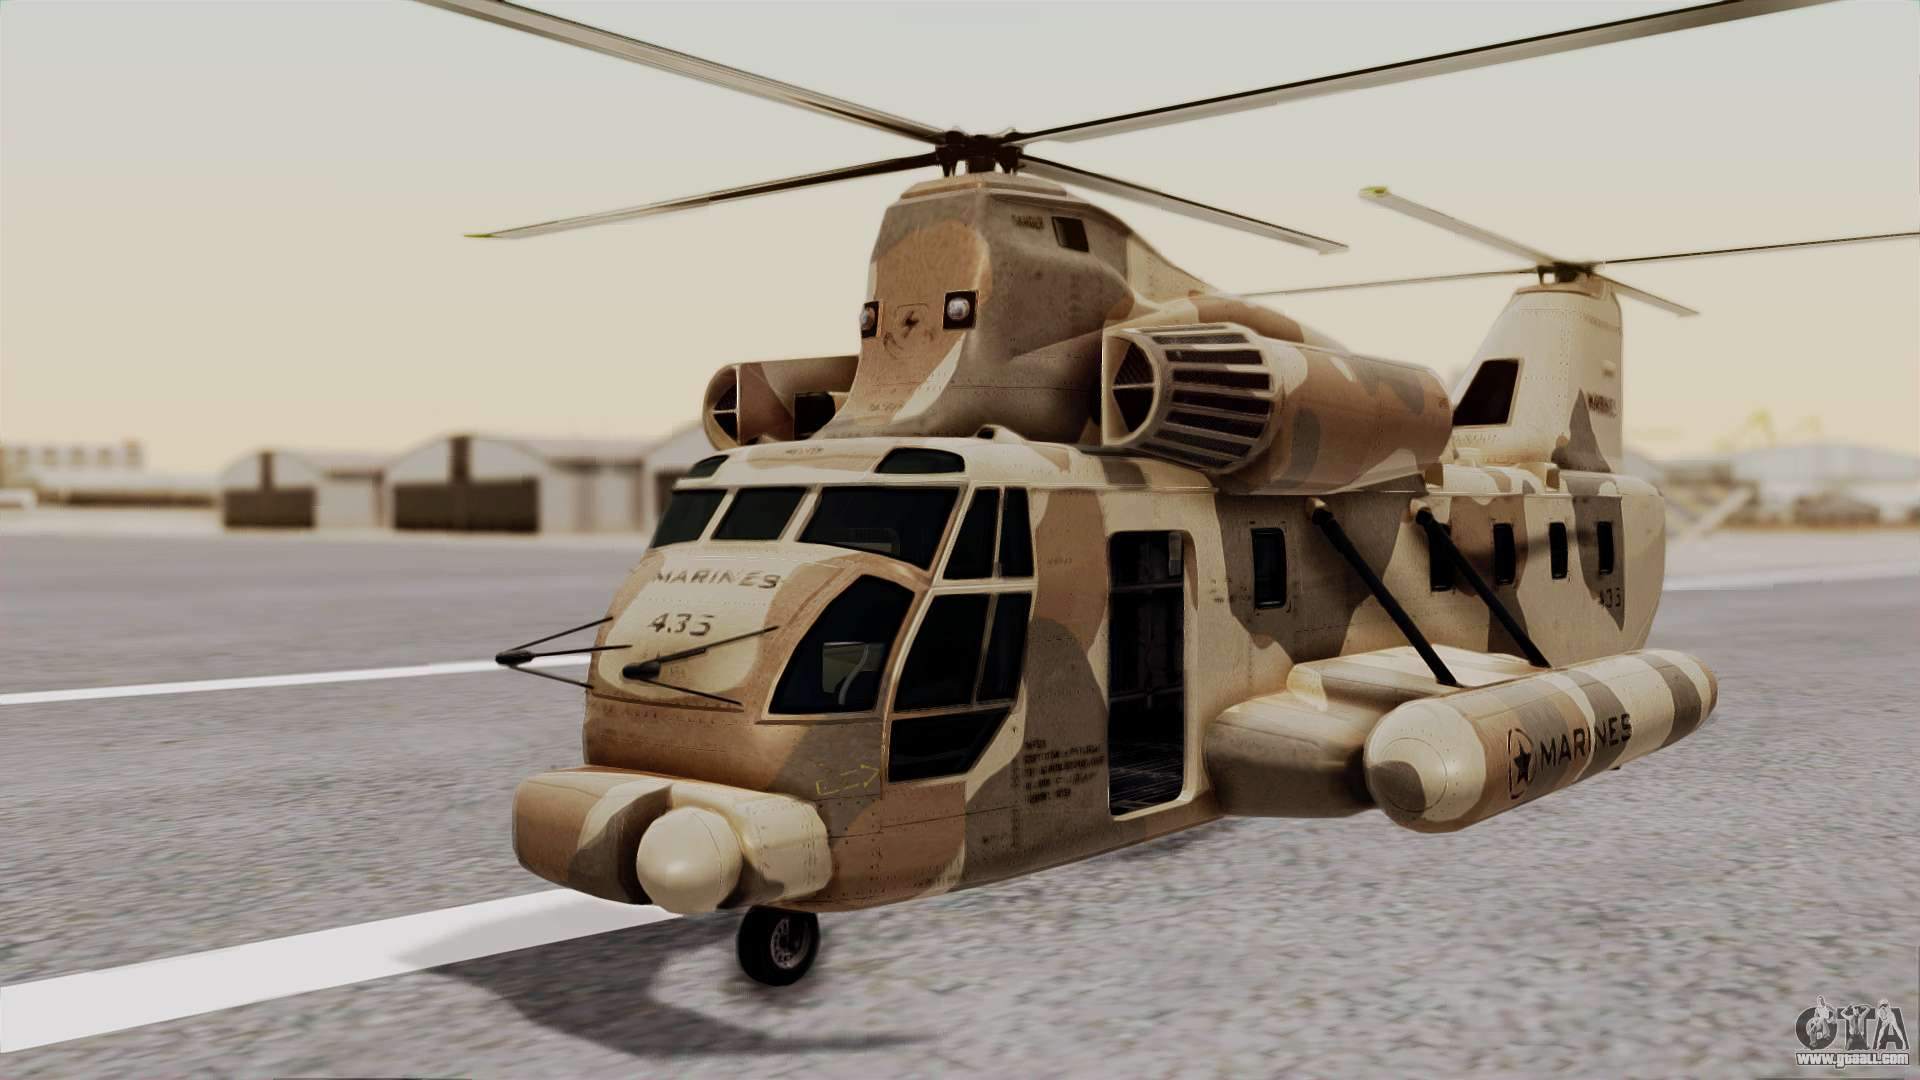 gta iv helicopters with 68241 Gta 5 Cargobob on 50734 Vtol Warship Pj3 as well Maps together with 54786 Beta Police Maverick furthermore 17590 Russian Annihilator together with 32445 Christmas Island.